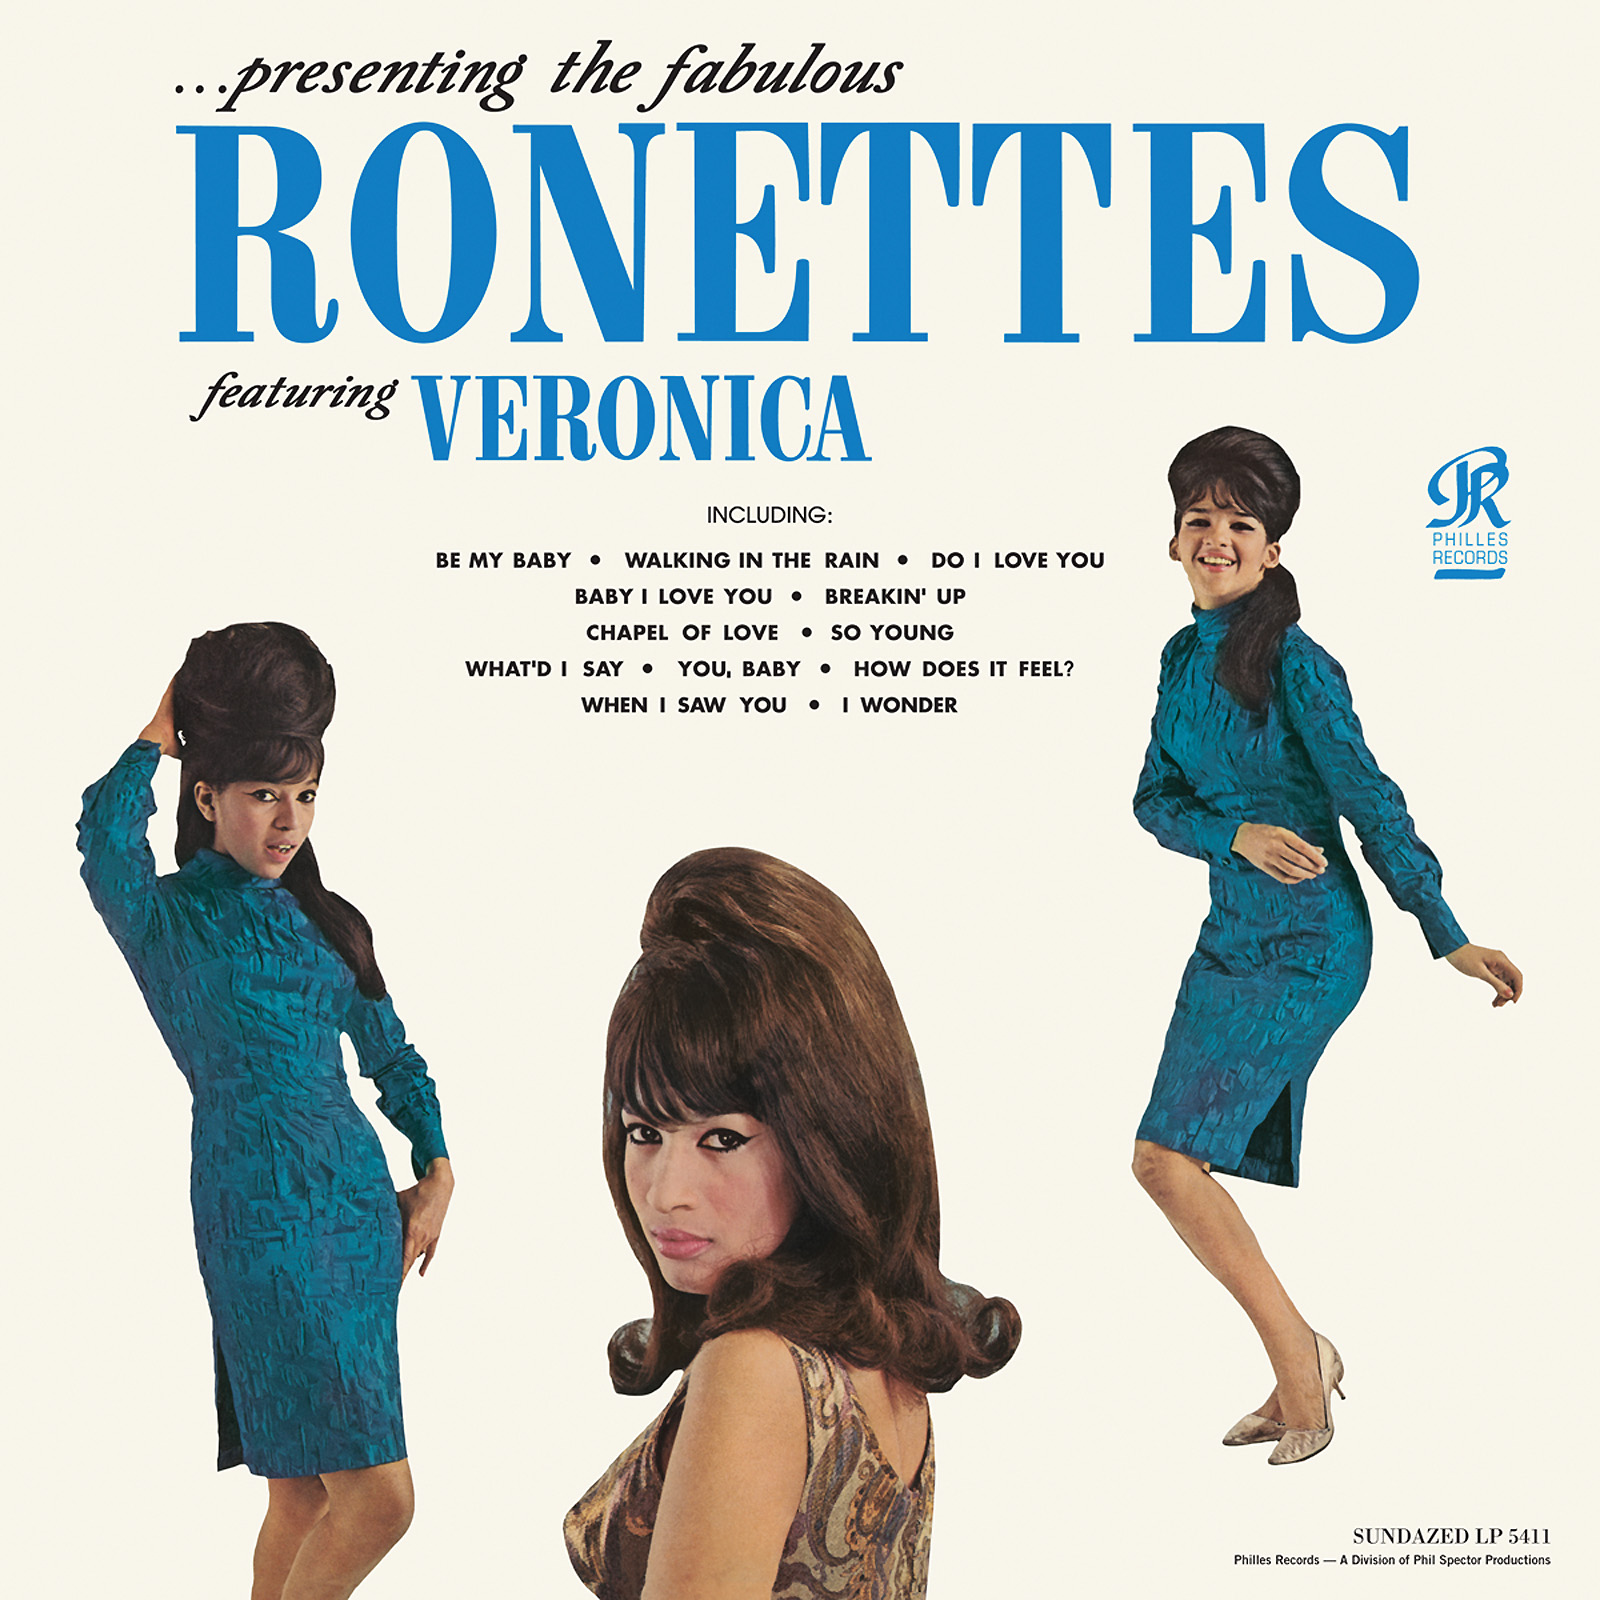 Ronettes, The - Presenting the Fabulous Ronettes featuring Veronica MONO EDITION LP